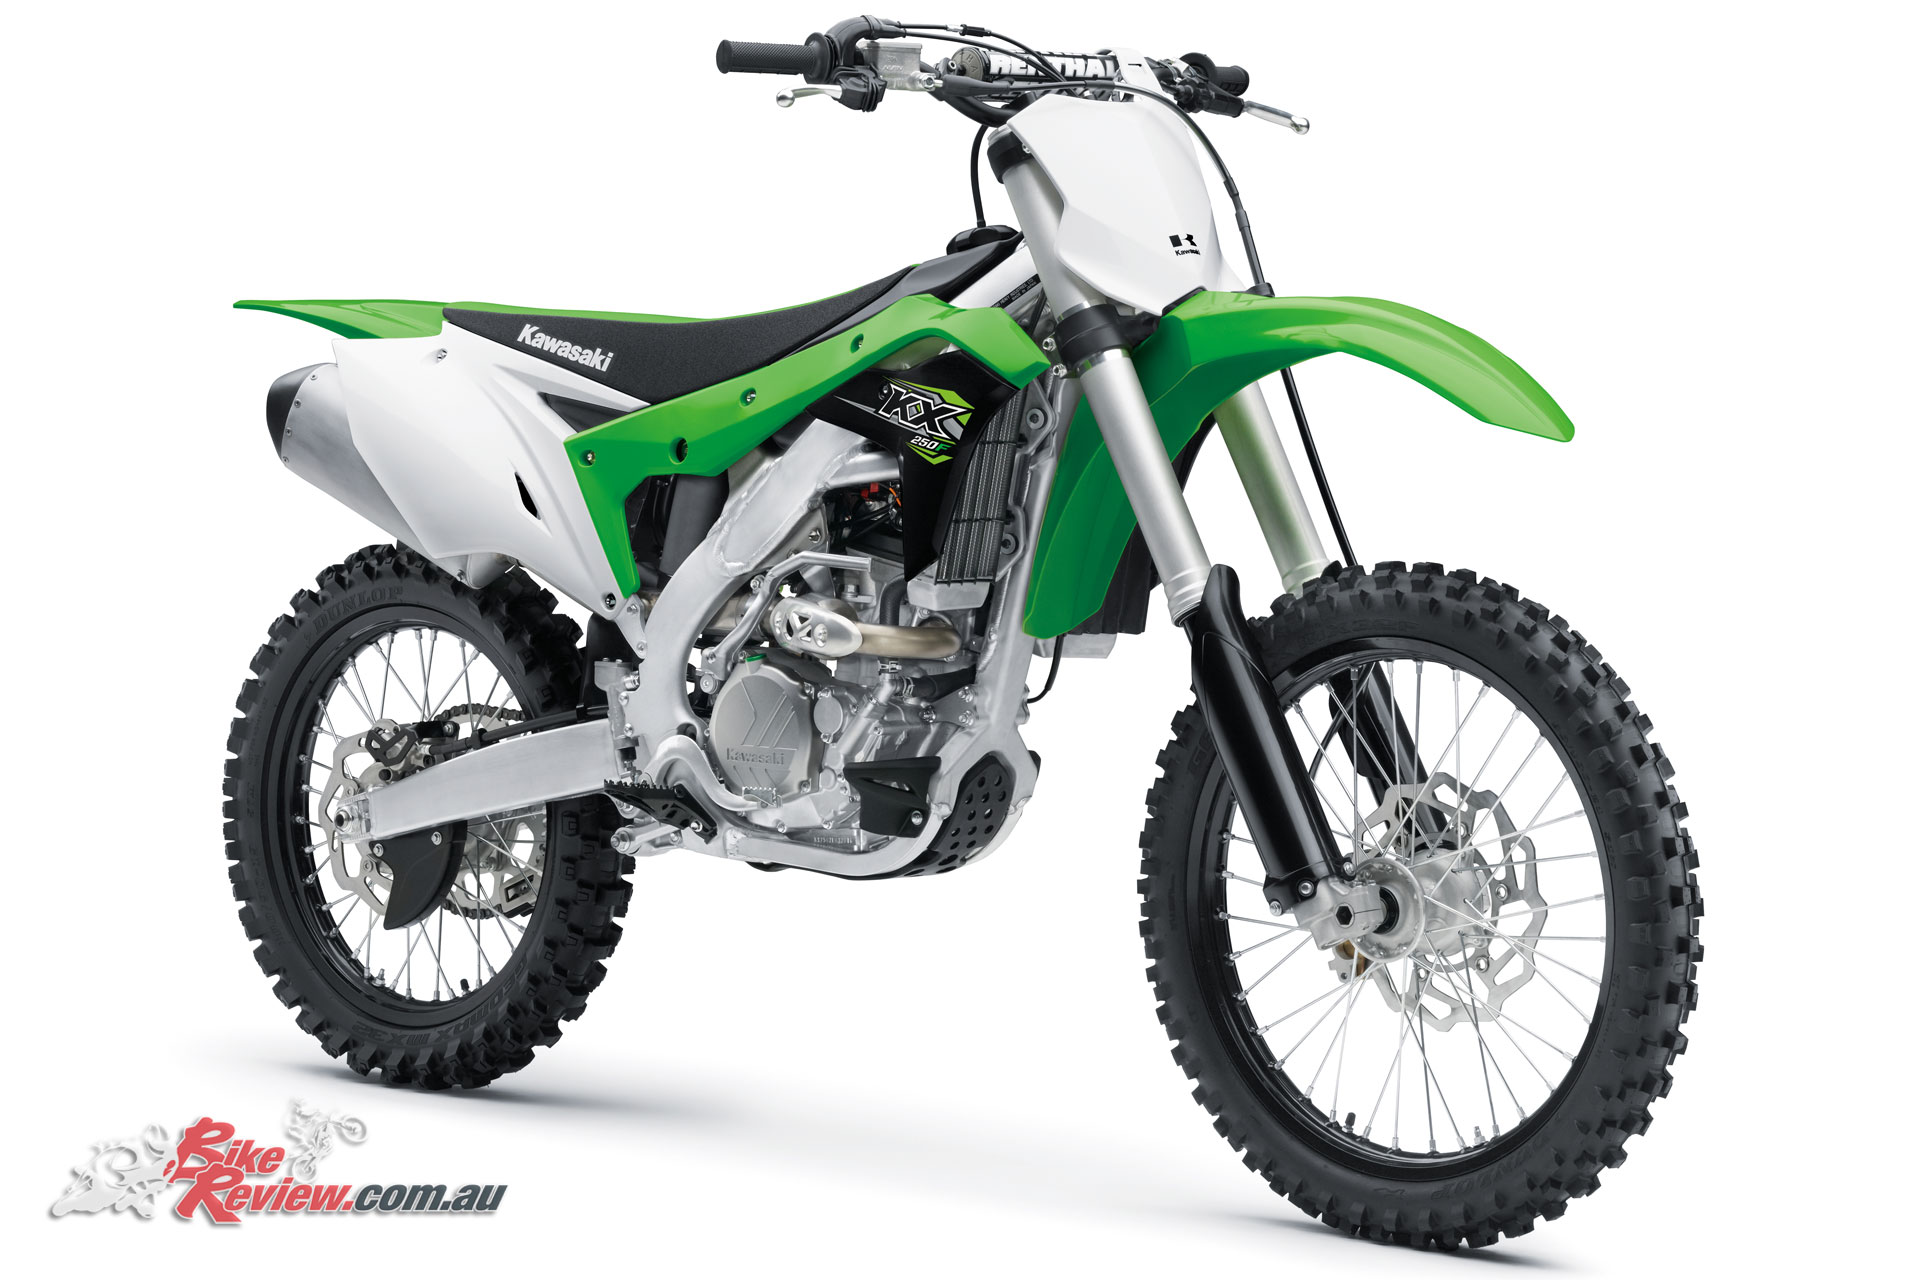 Kawasaki's 2018 KX250F is now available in Australia ...